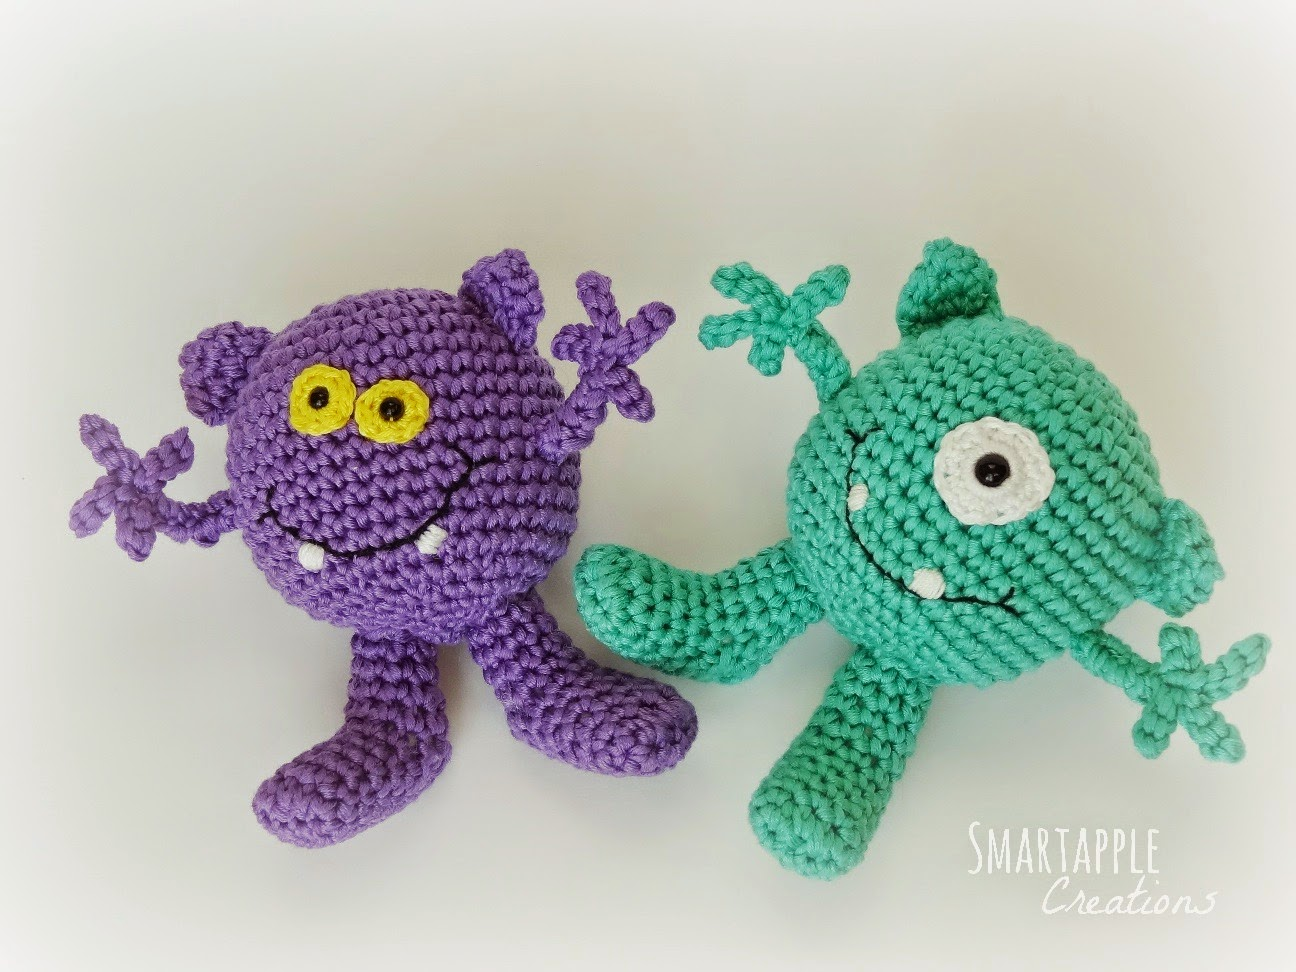 Amigurumi En Monsters : Smartapple Creations - amigurumi and crochet: Little ...